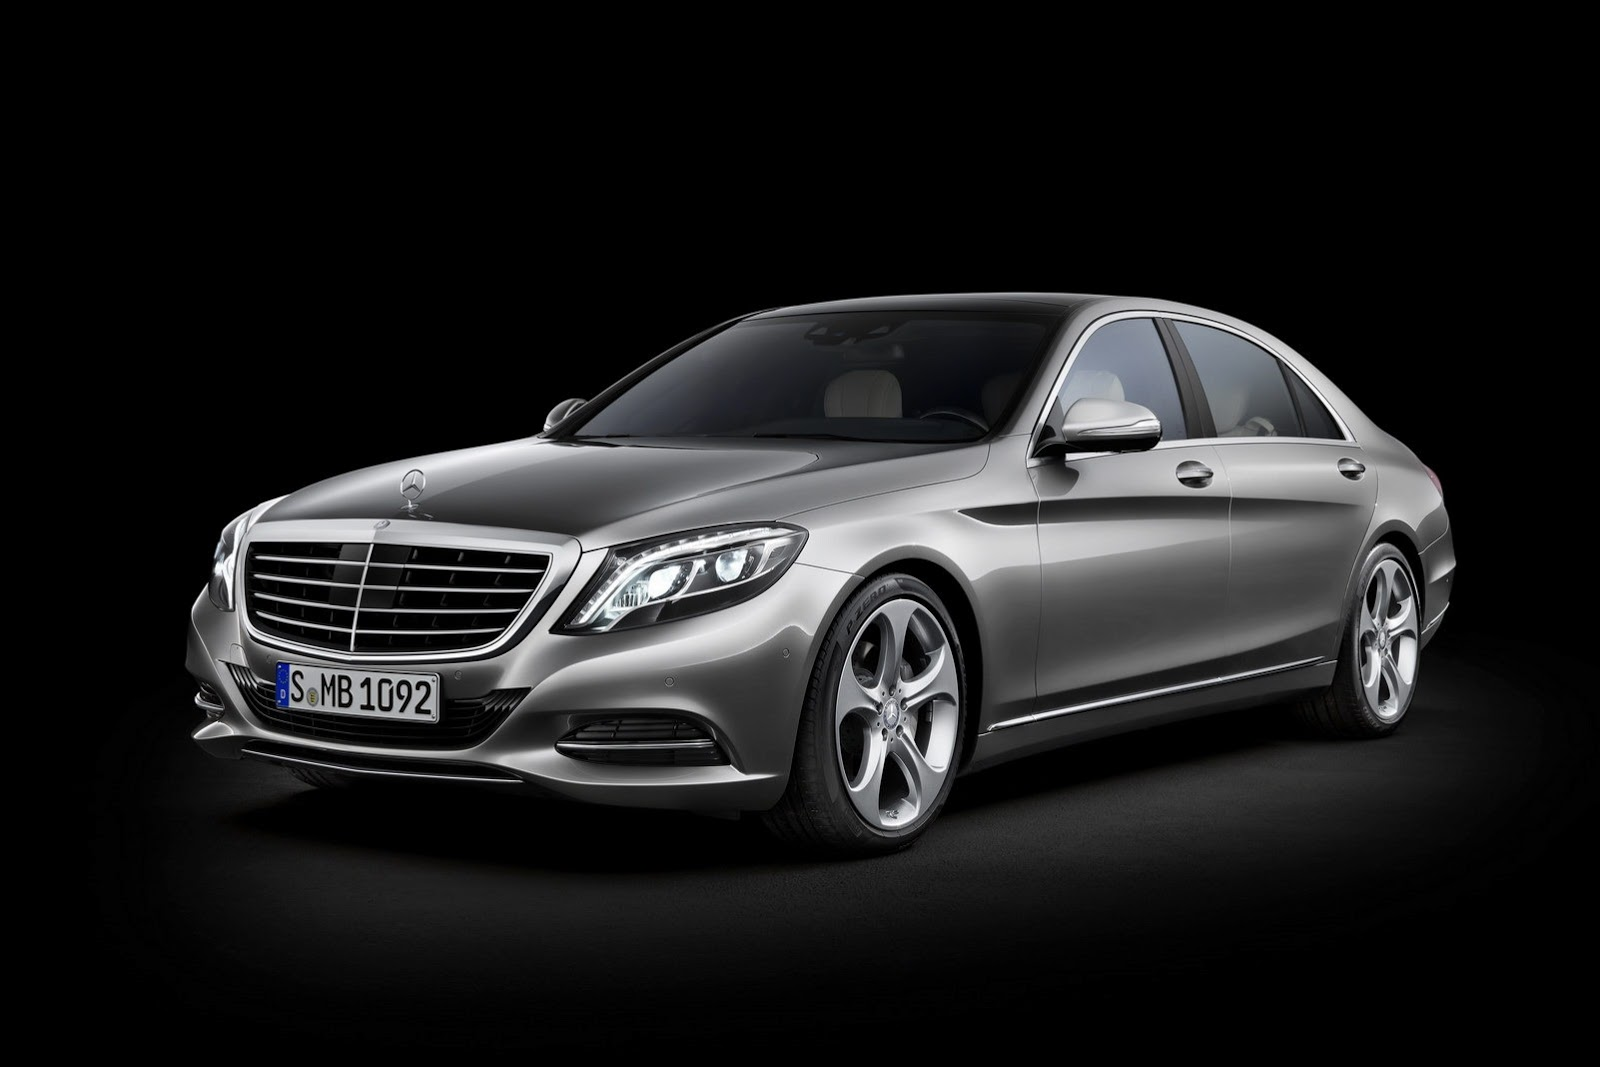 2014 Mercedes Benz S-Class - SMADE MEDIA (65)